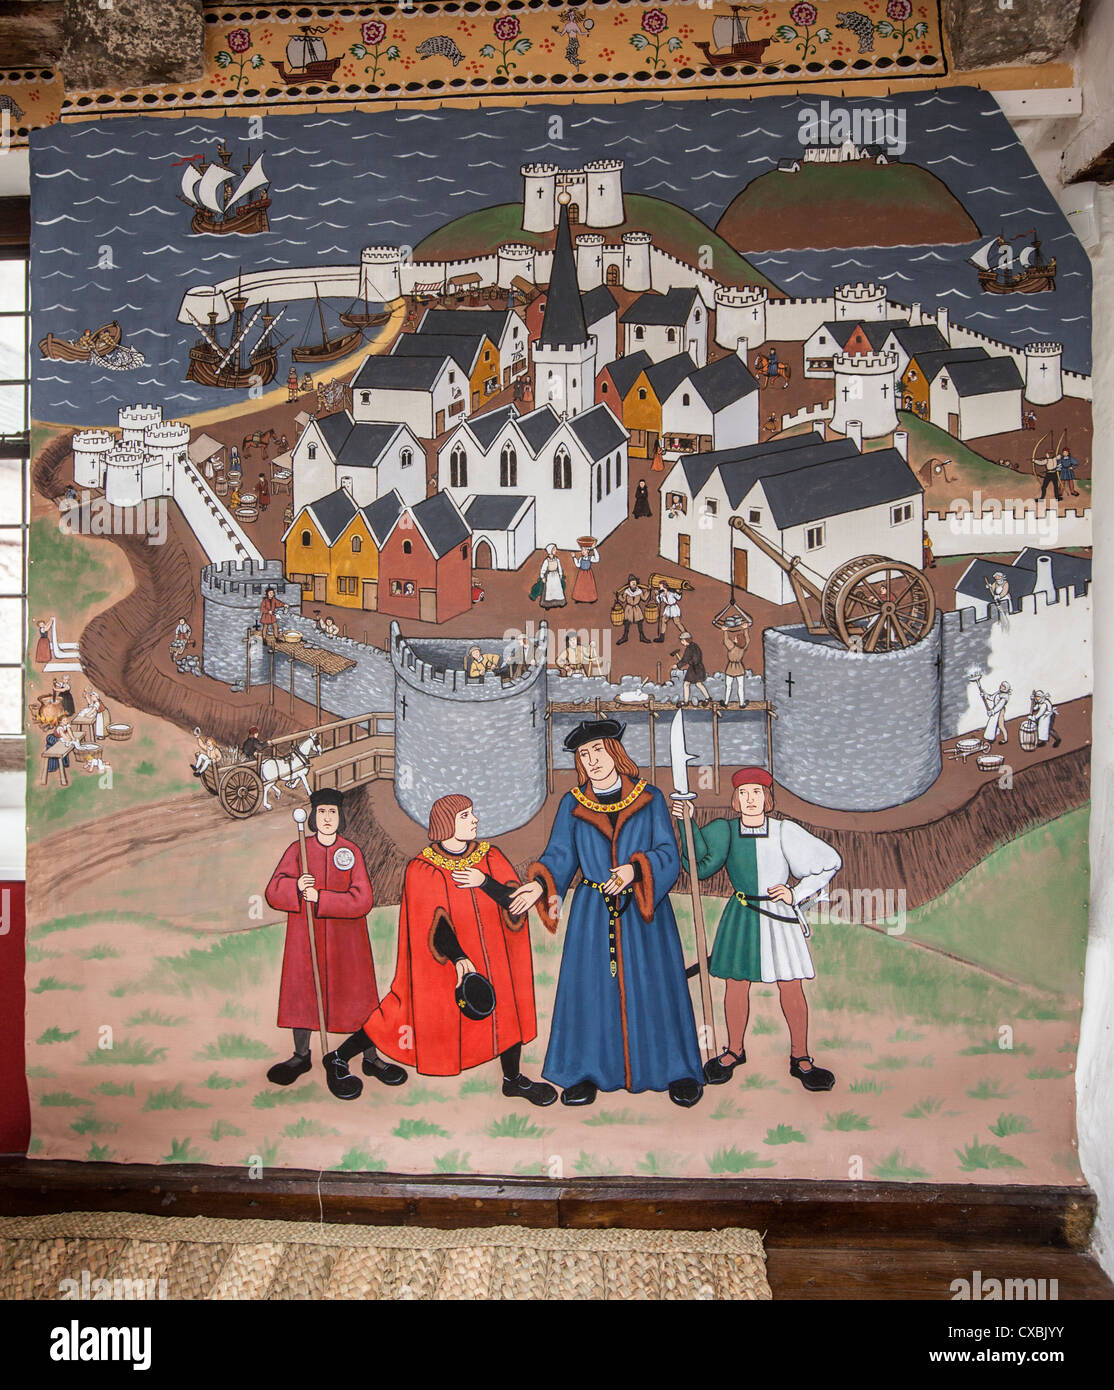 A mural depicting Medieval Tenby, held in the National Trust owned Merchants house, Tenby. - Stock Image